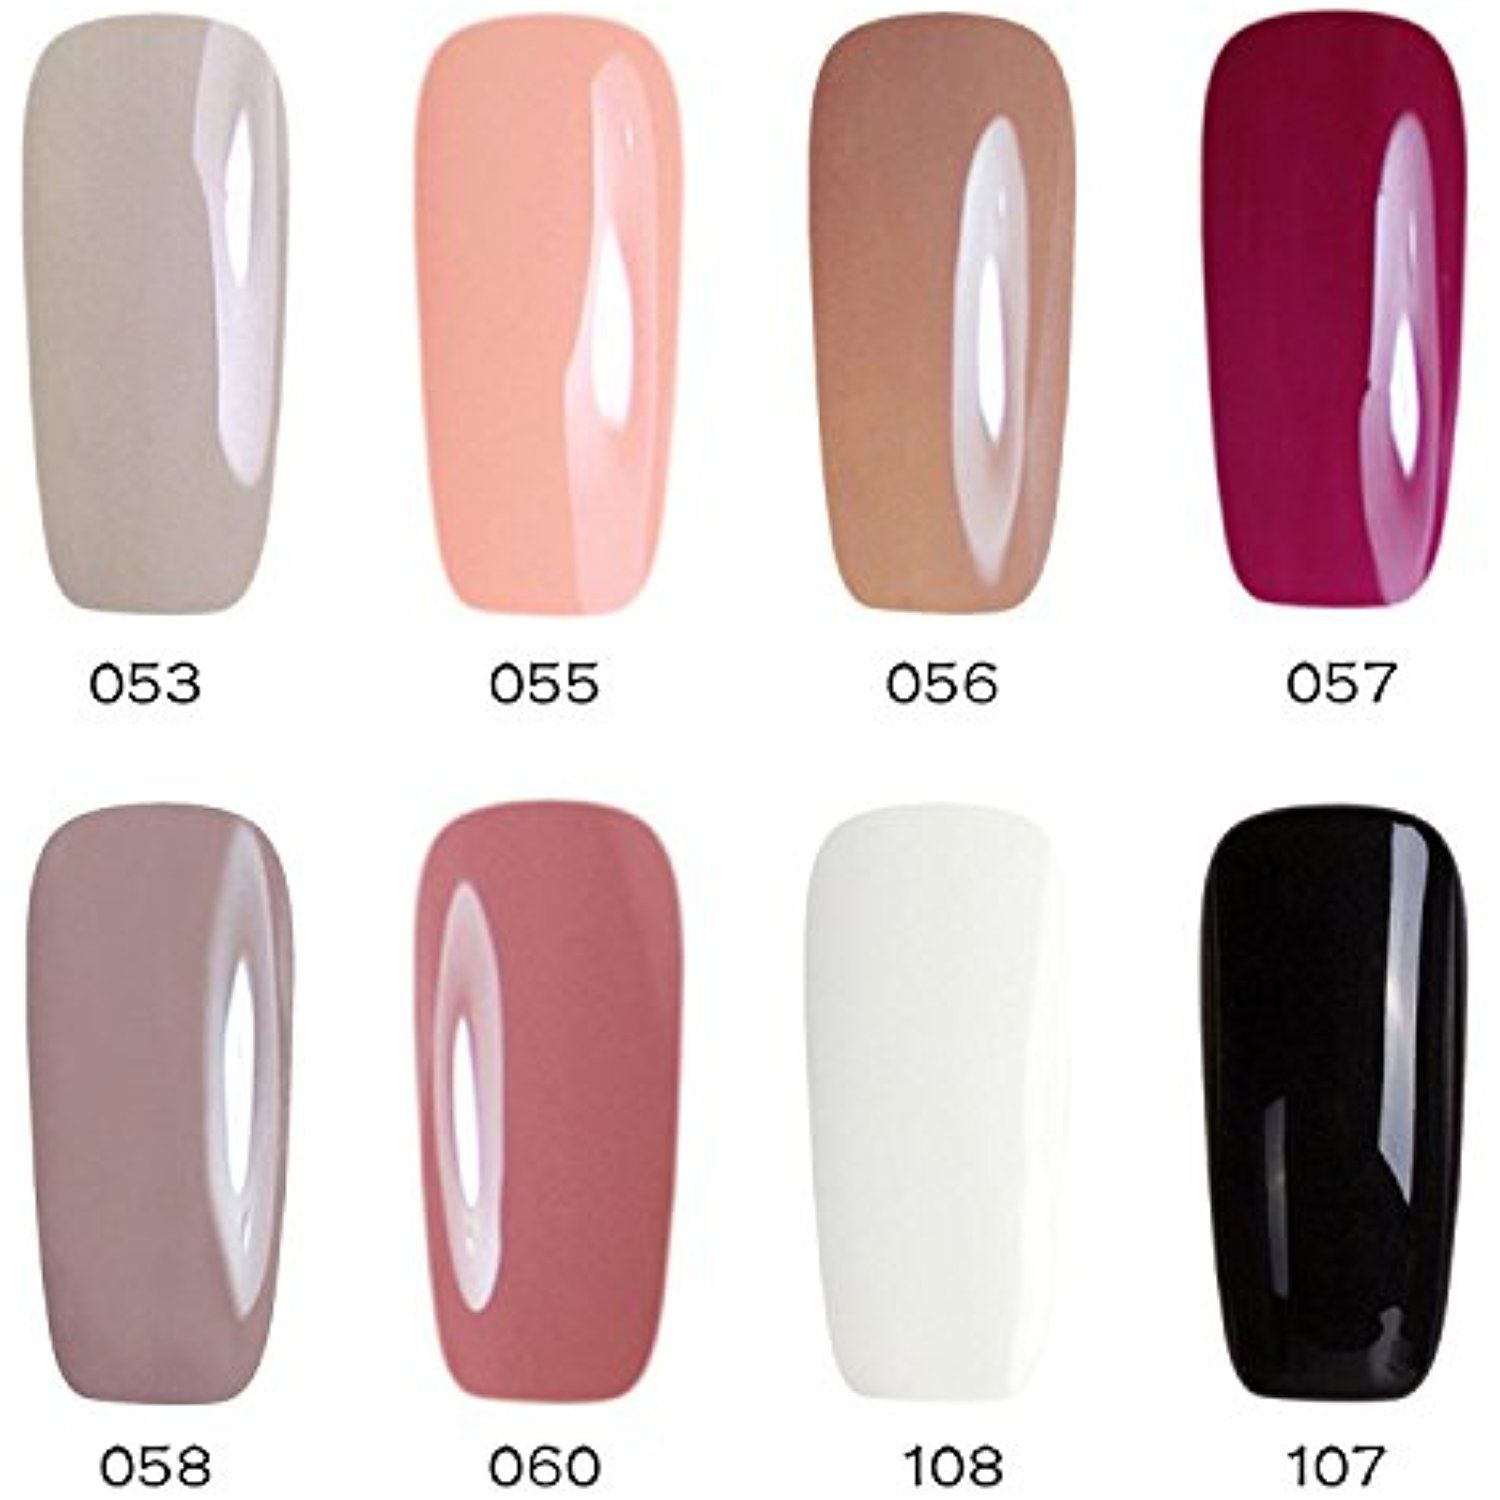 Gellen Soak Off Uv Led Gel Nail Polish 8 Colors Set Nail Art Home Salon Beauty Gift Starte Makeup Brush Set Best Best Foundation Makeup Makeup Kit Essentials